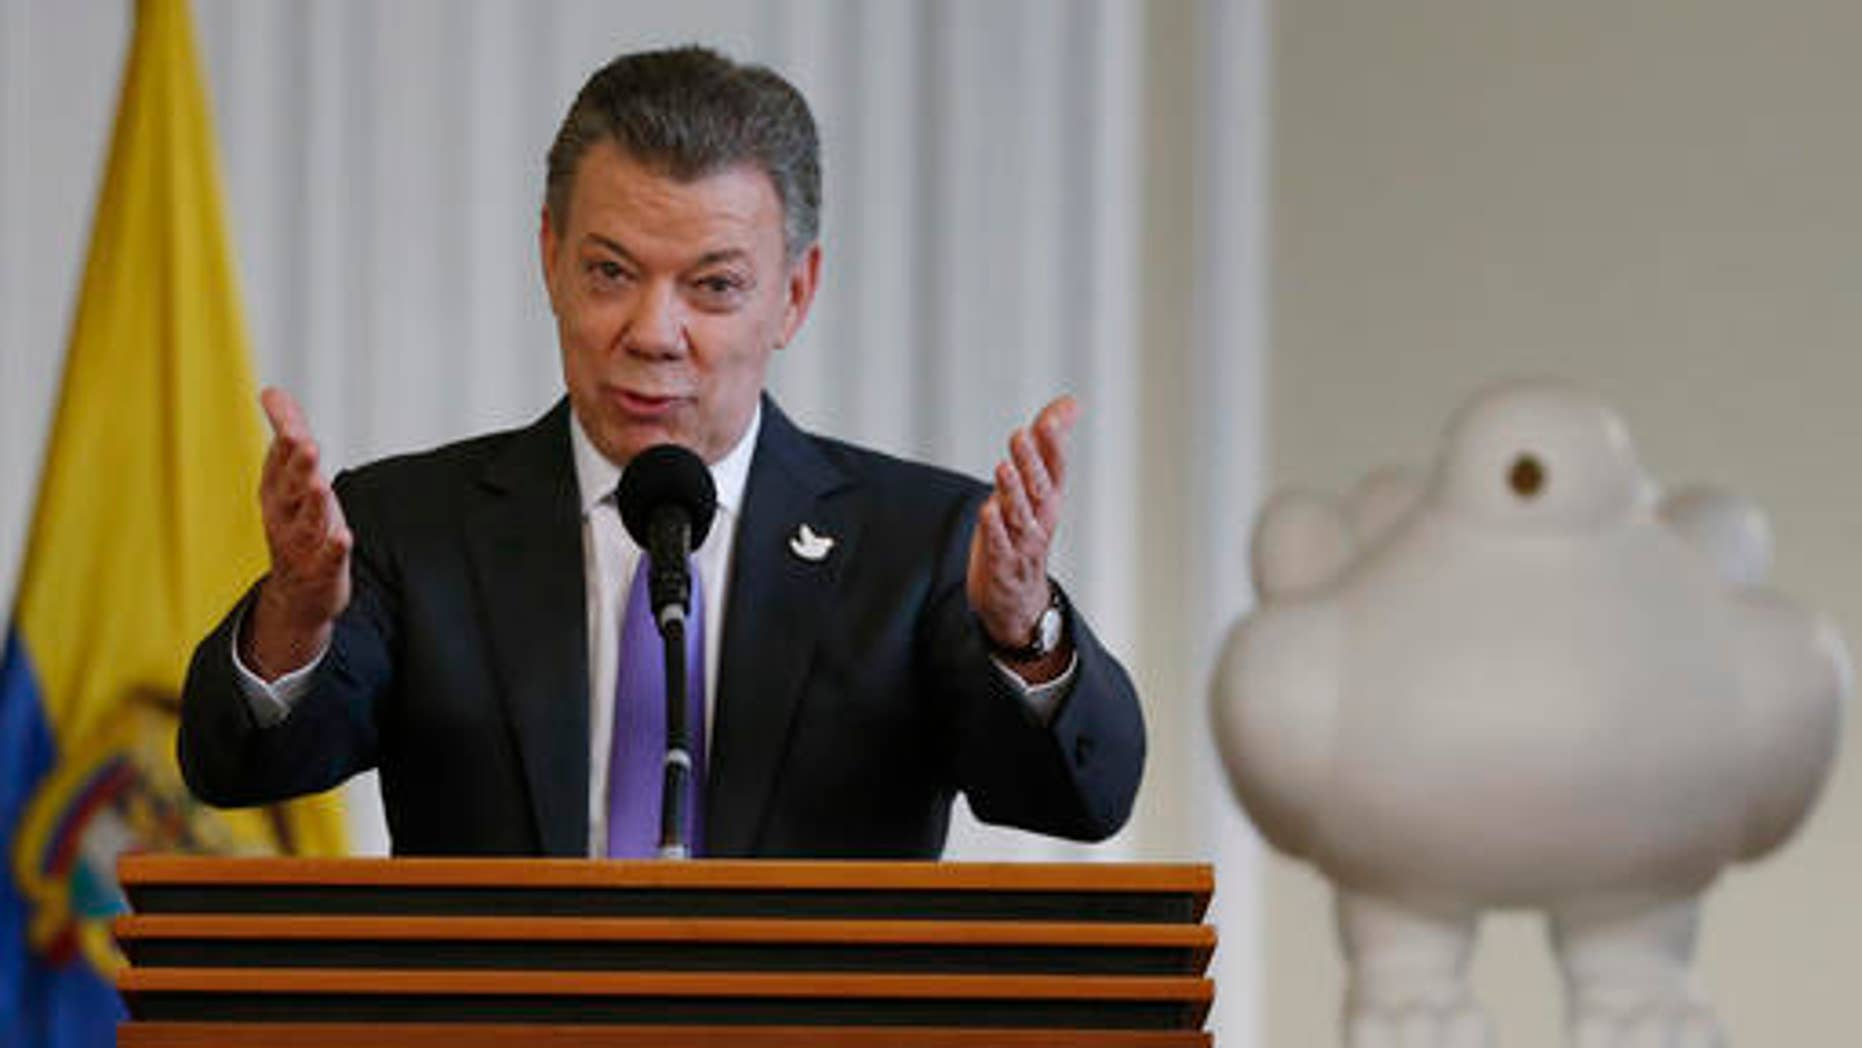 Colombia's President Juan Manuel Santos at the presidential palace in Bogota, Colombia, Friday, Oct. 7, 2016.